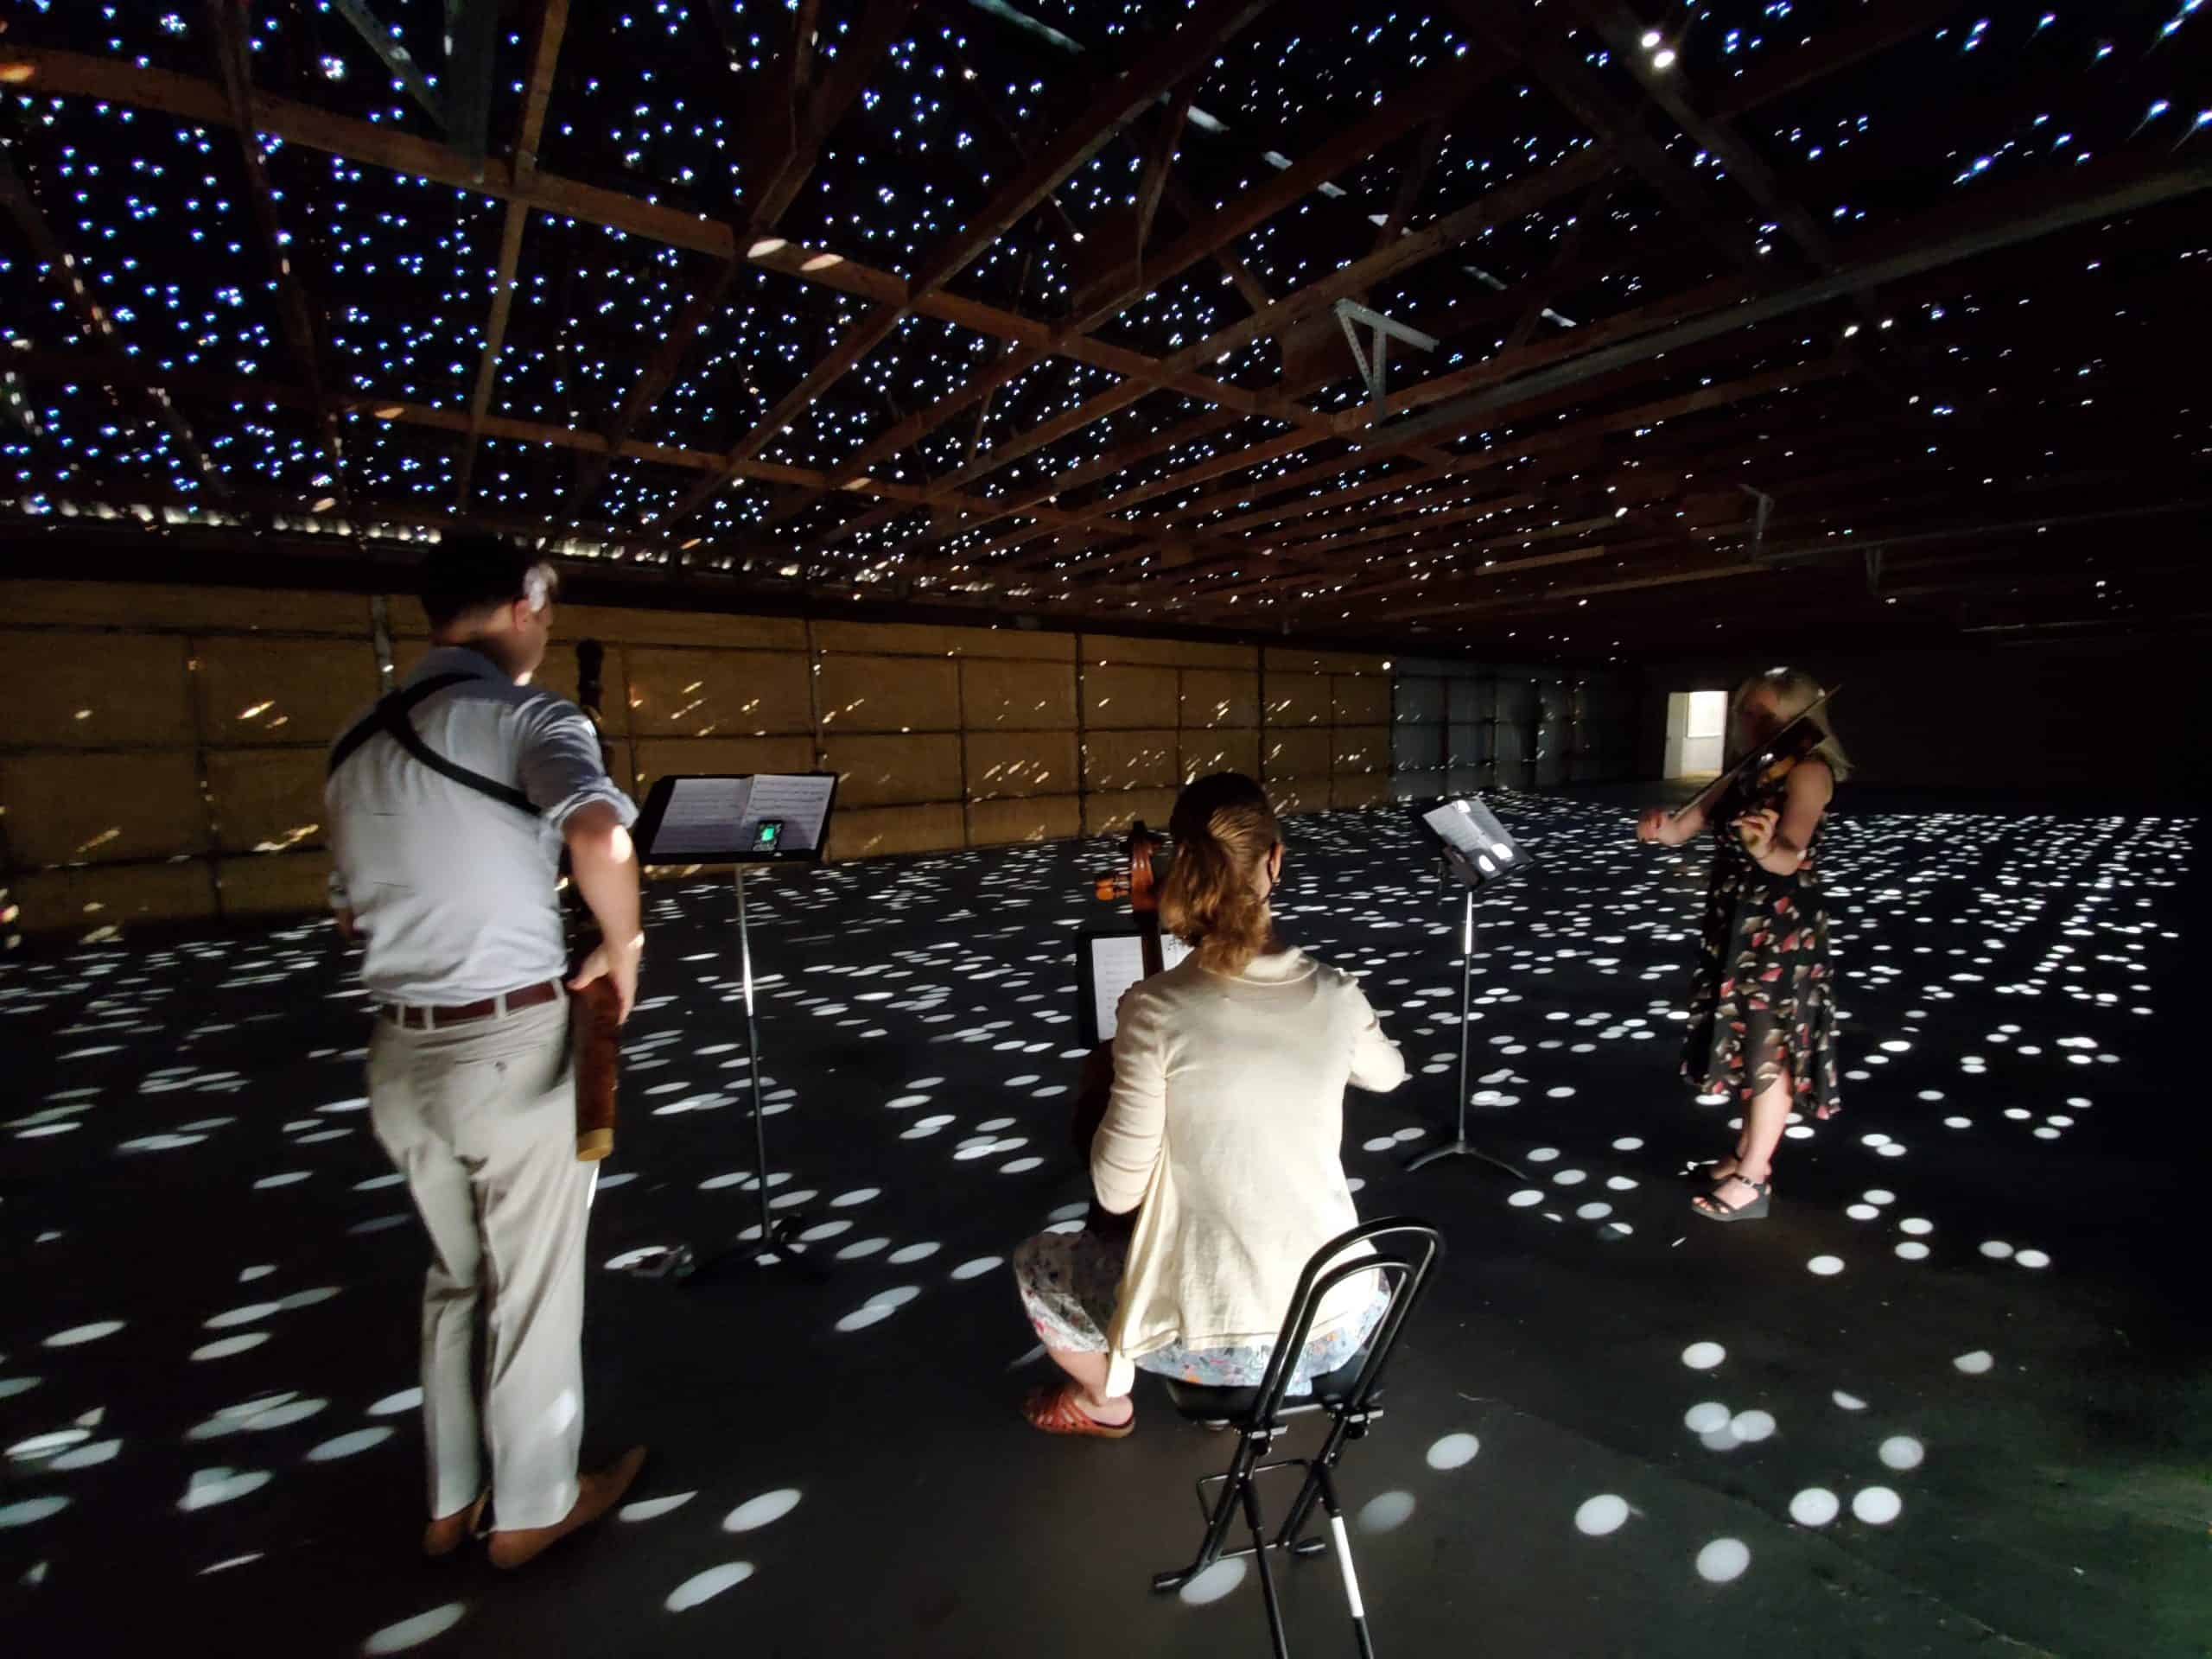 Nate, Carrie, and Annabeth rehearse in a space created by Chris Fraser called Asterisms